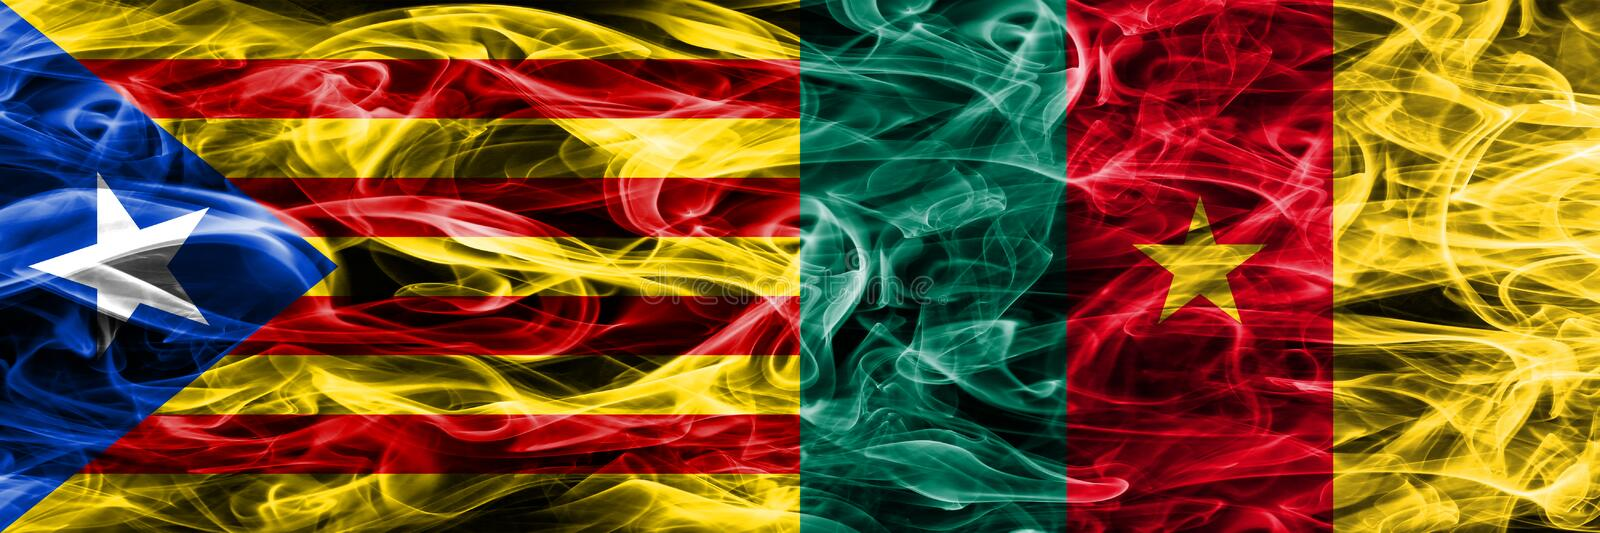 Catalonia vs Cameroon copy smoke flags placed side by side. Thick colored silky smoke flags of Catalan and Cameroon copy.  royalty free illustration